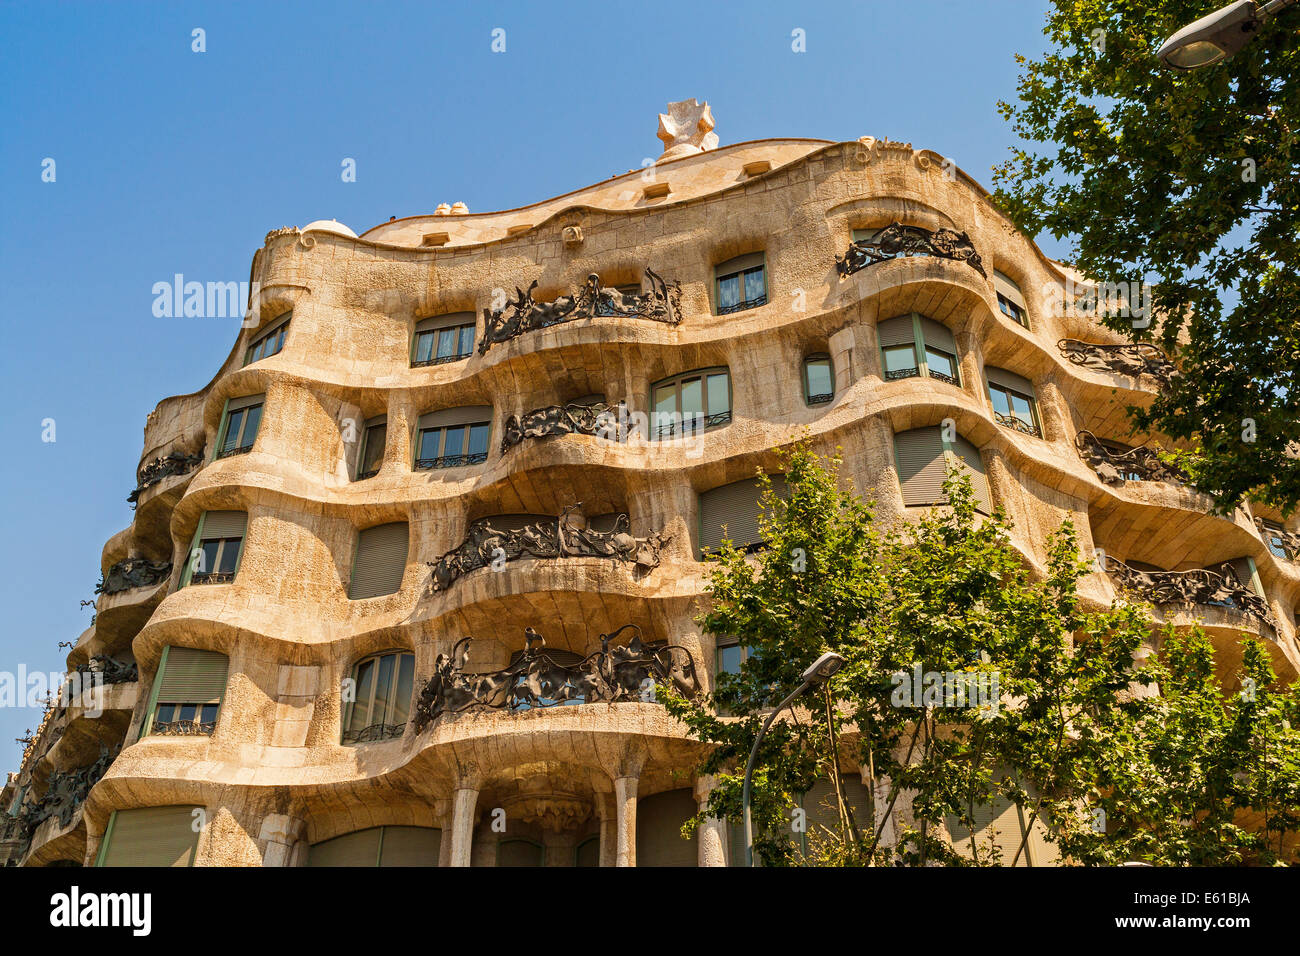 Exterior La Pedrera The Stone Quarry Or Casa Mil 224 An Undulating Stock Photo Royalty Free